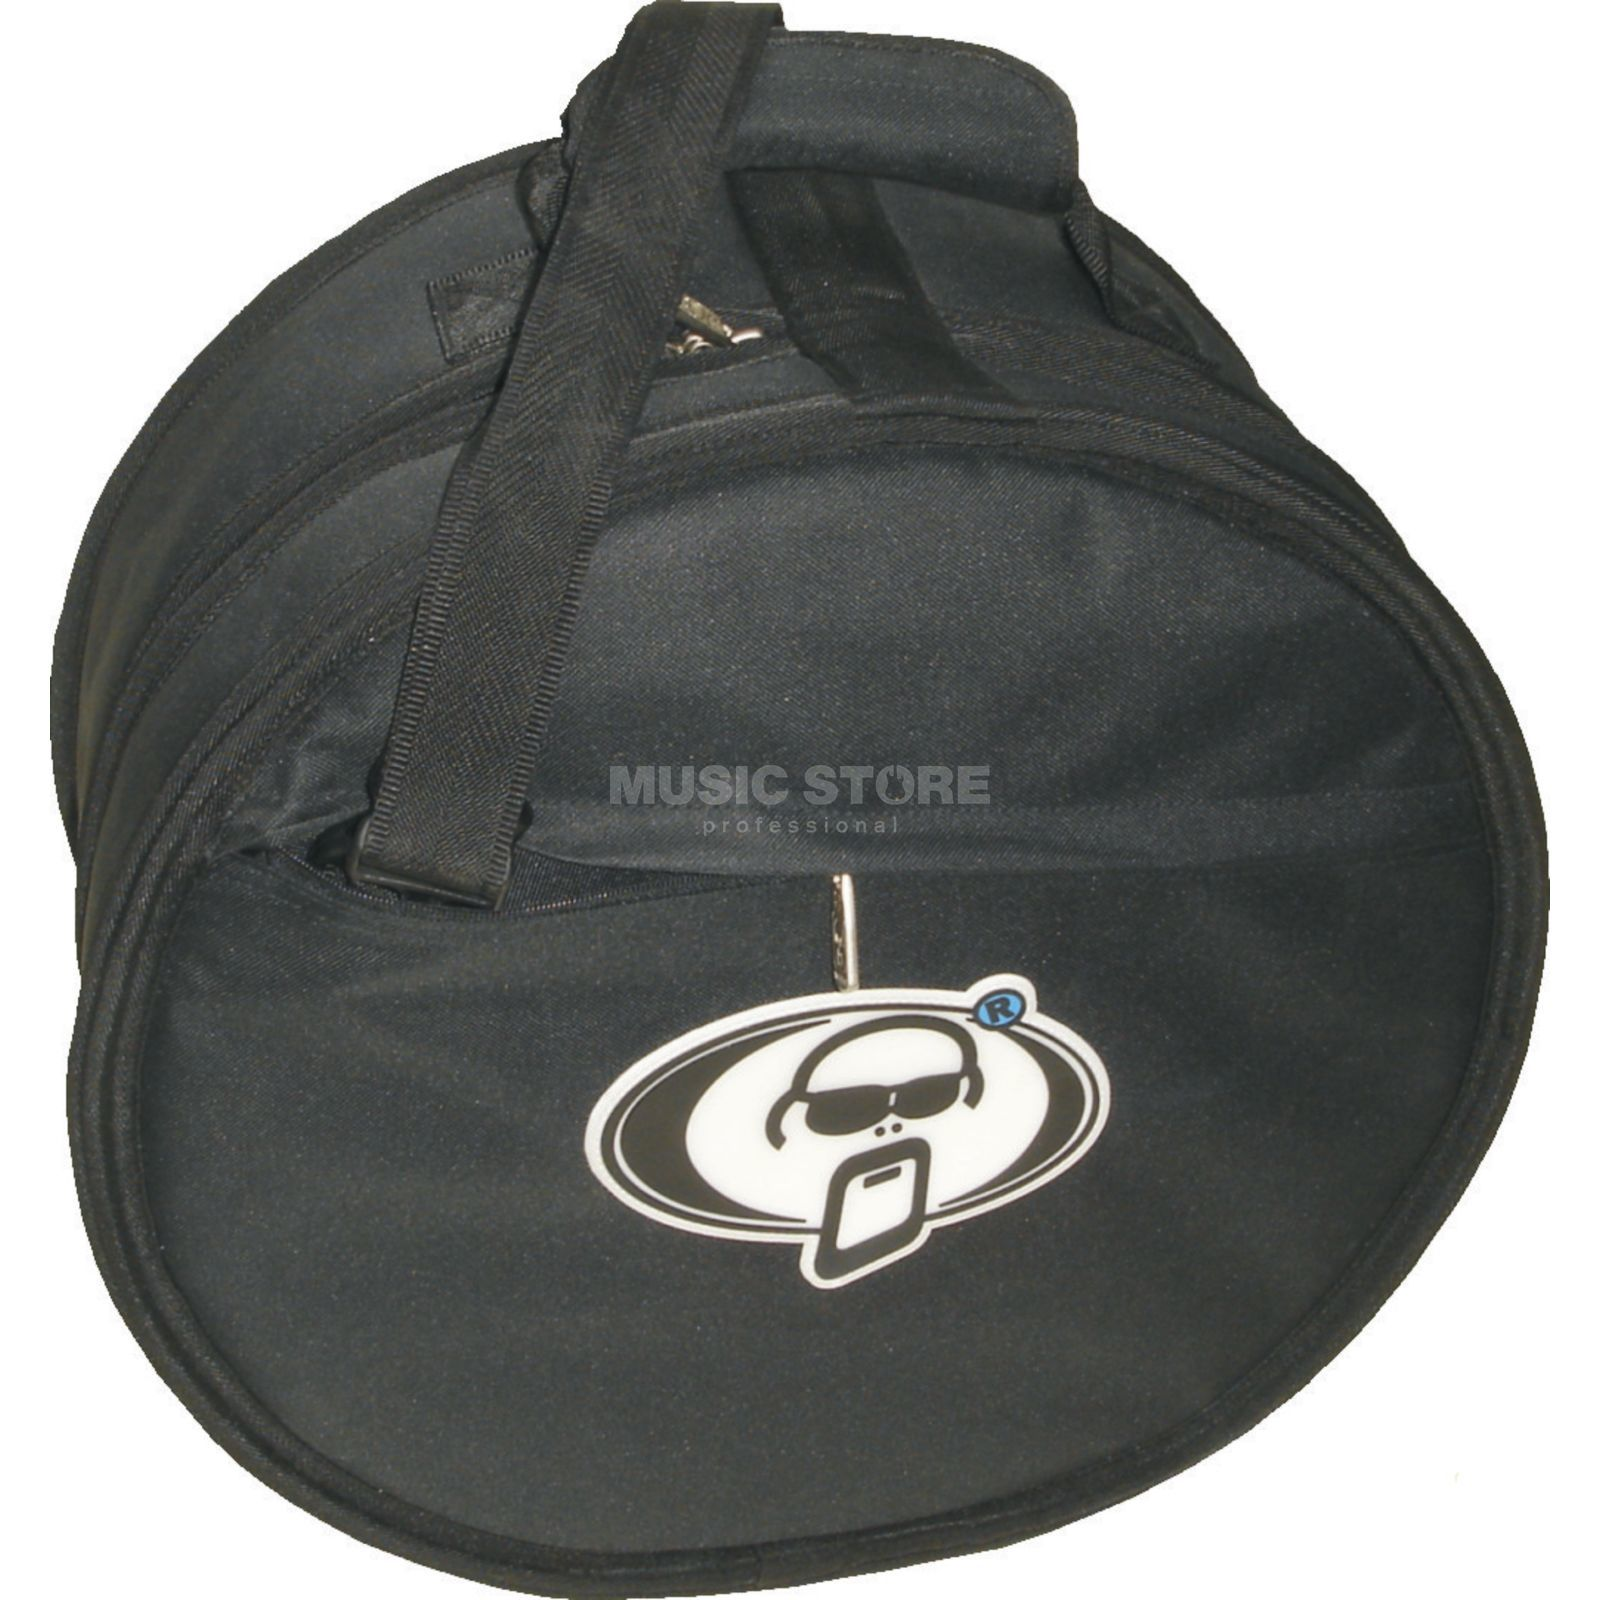 "Protection Racket Snare Bag 3008C, 12""x7"", w/Shoulder Strap Produktbild"